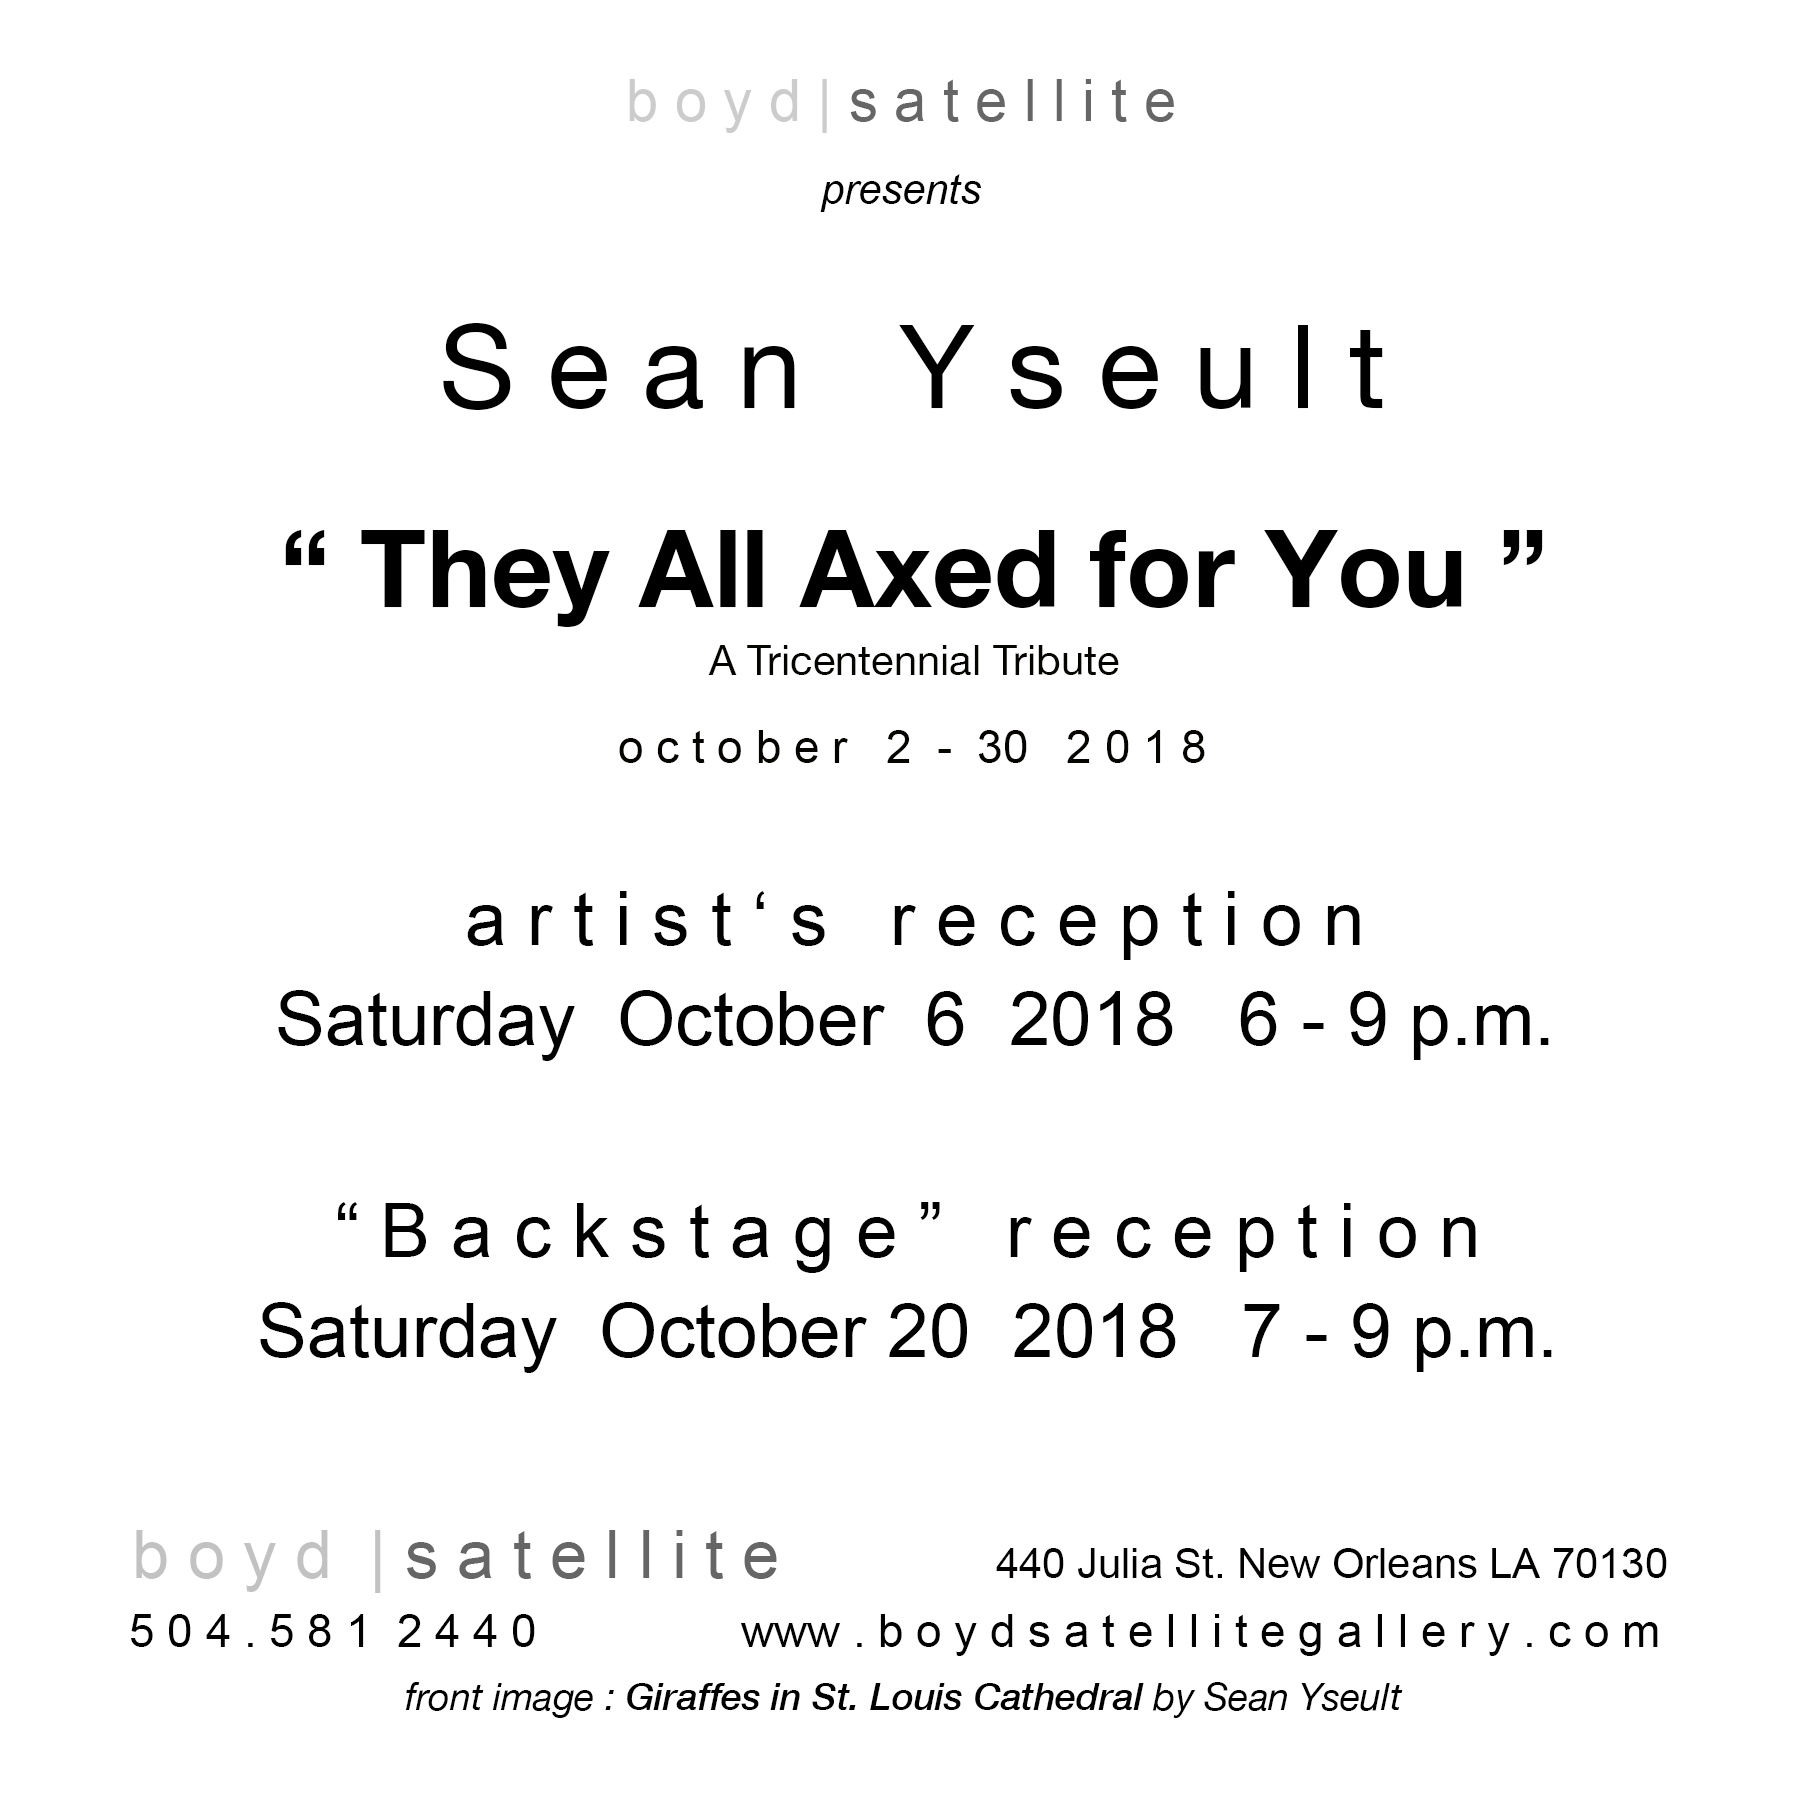 Sean Yseult Invitation.jpg